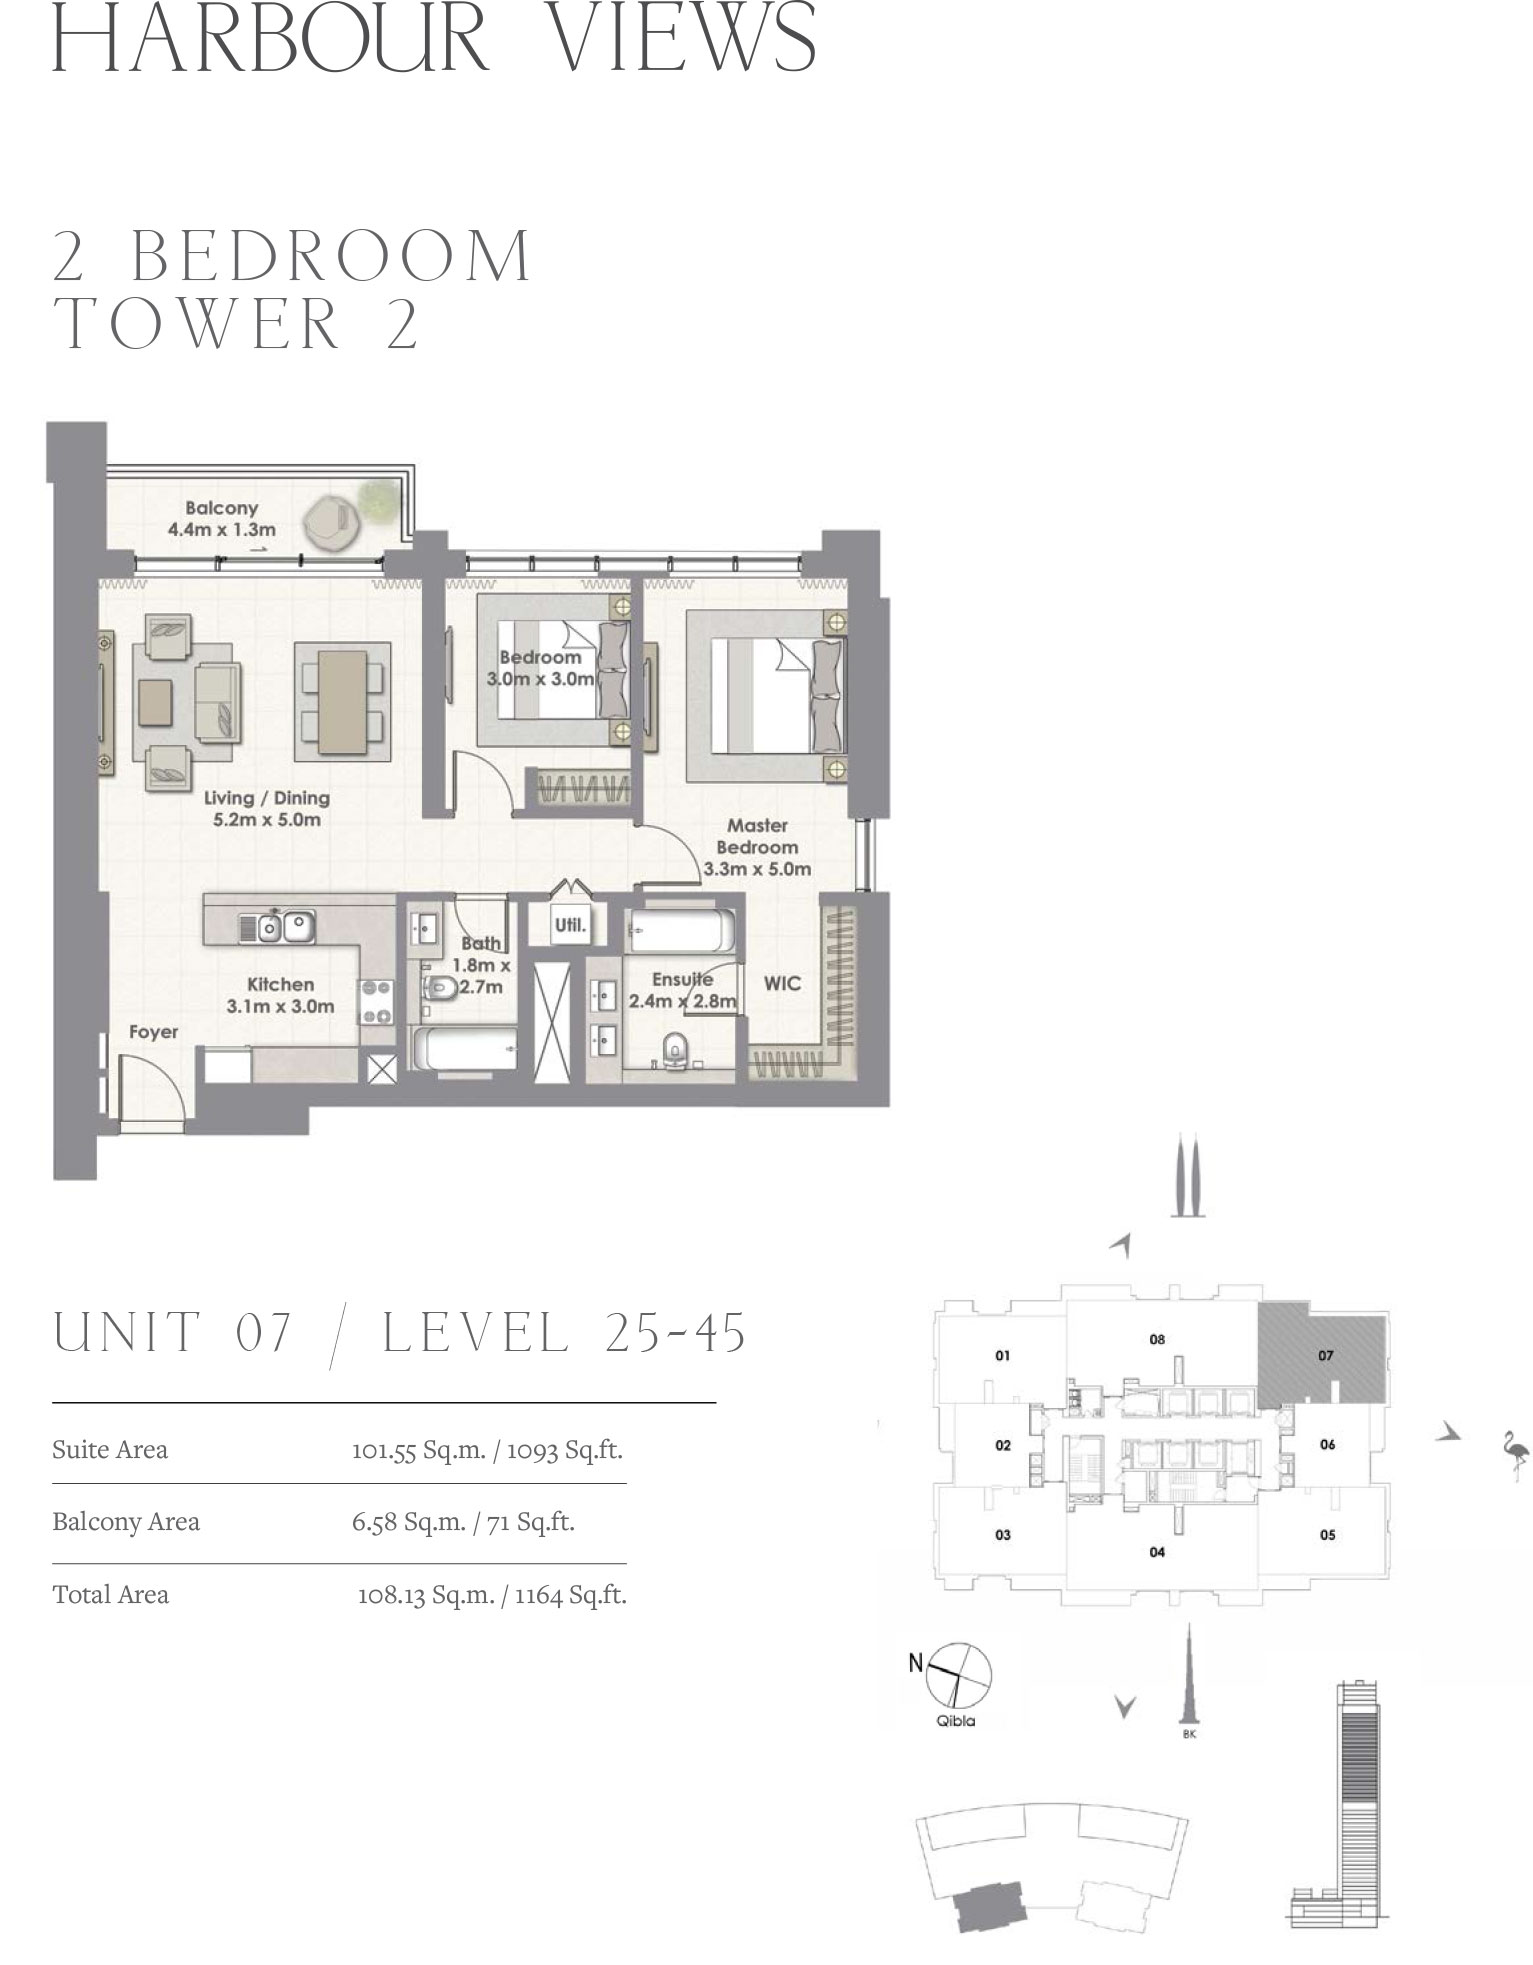 2 Bedroom Tower 2, Unit 07/Level 25-45